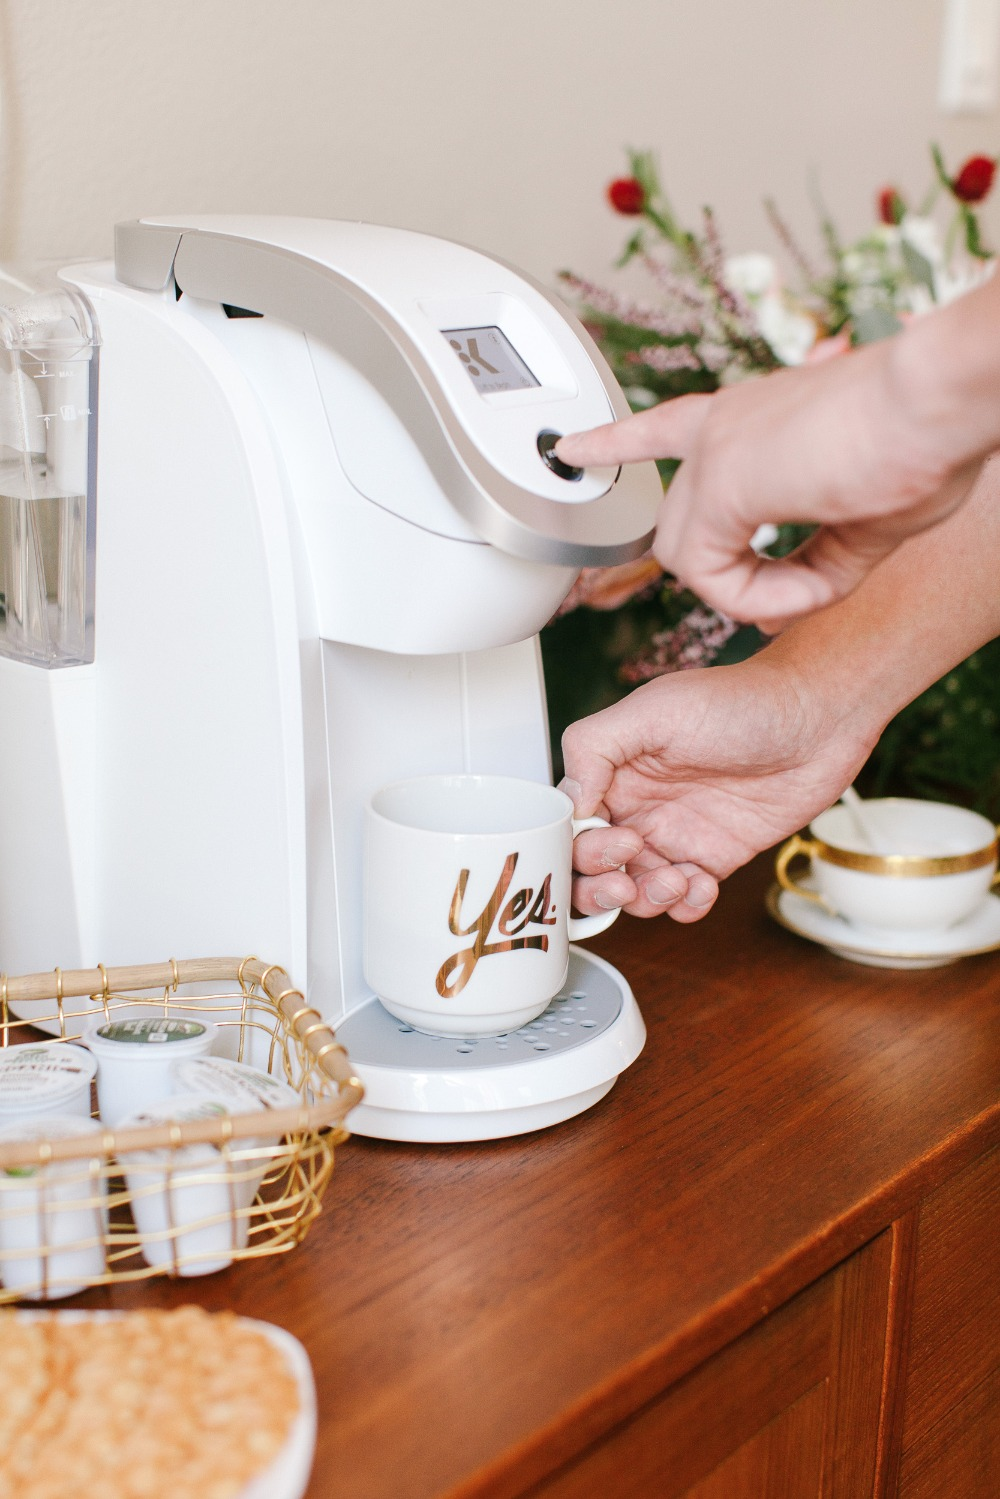 Breakfast In Bed Or Any Morning Wouldnt Be Complete Without Coffee And With Our New KeurigR K250 Brewer We Can Easily Create Enjoy The Perfect Cup